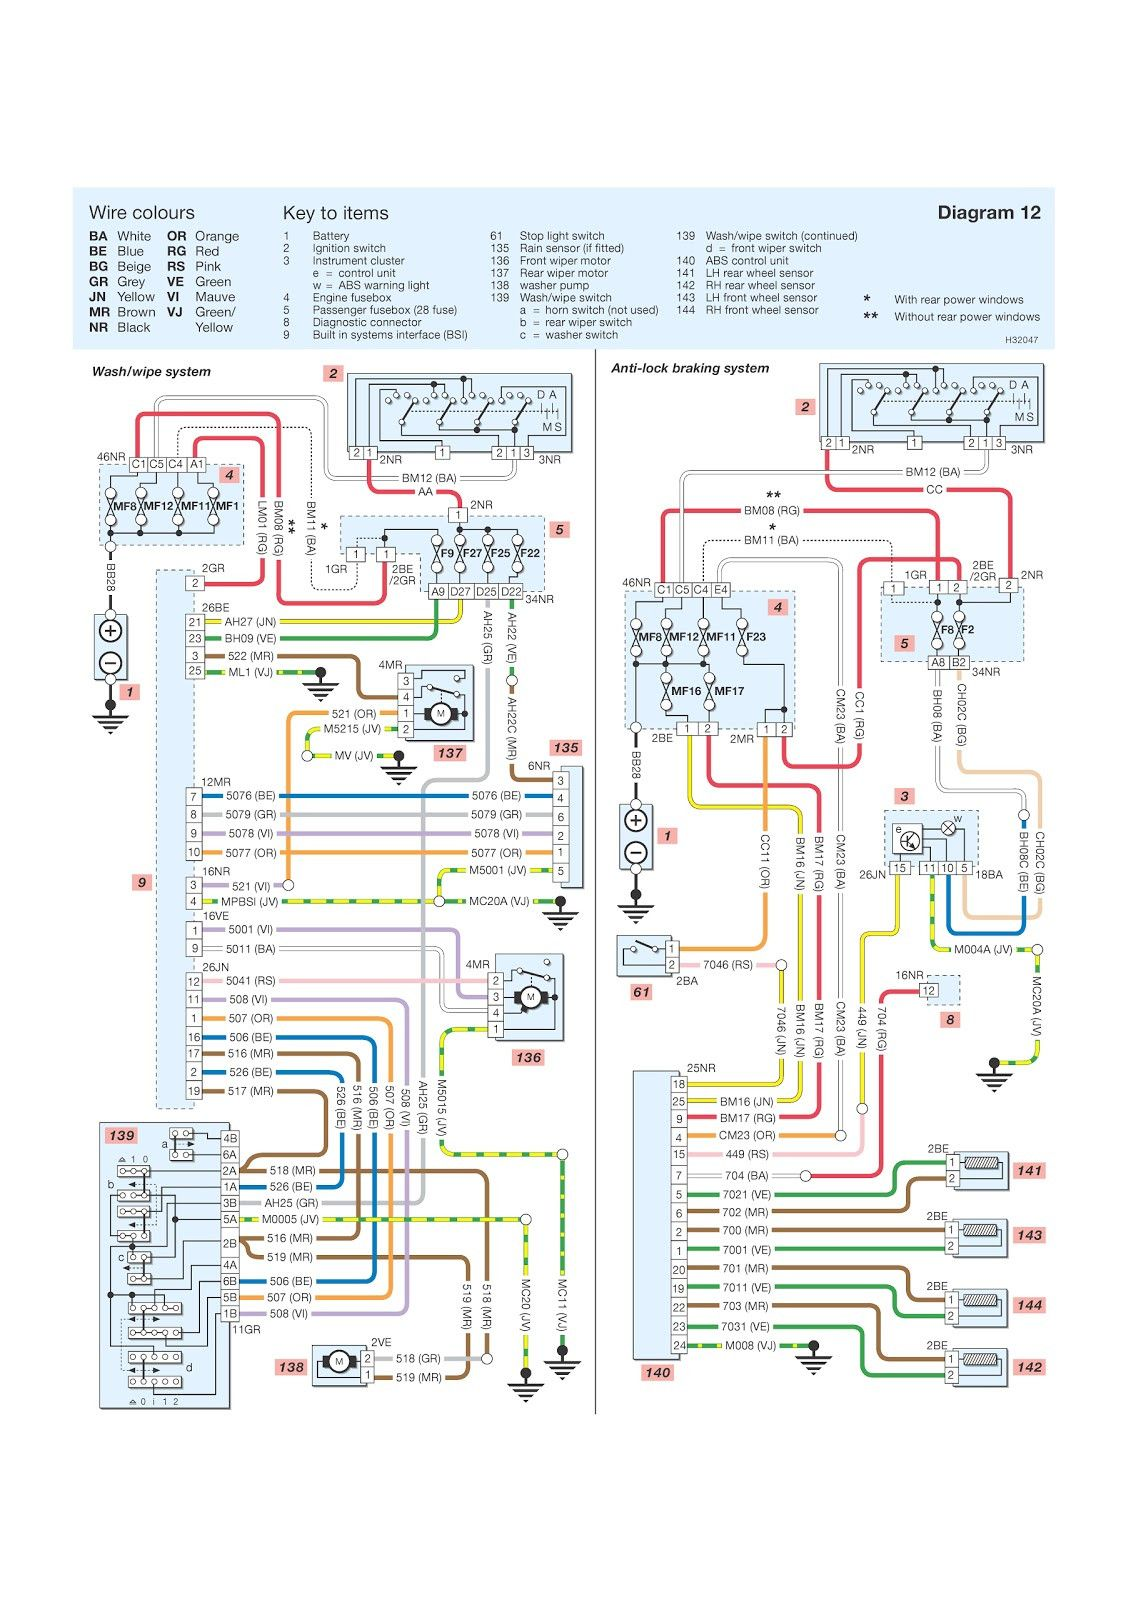 peugeot 206 wiring pdf simple wiring diagram schema 2009 chevy aveo engine diagram peugeot 206 ignition wiring diagram [ 1131 x 1600 Pixel ]